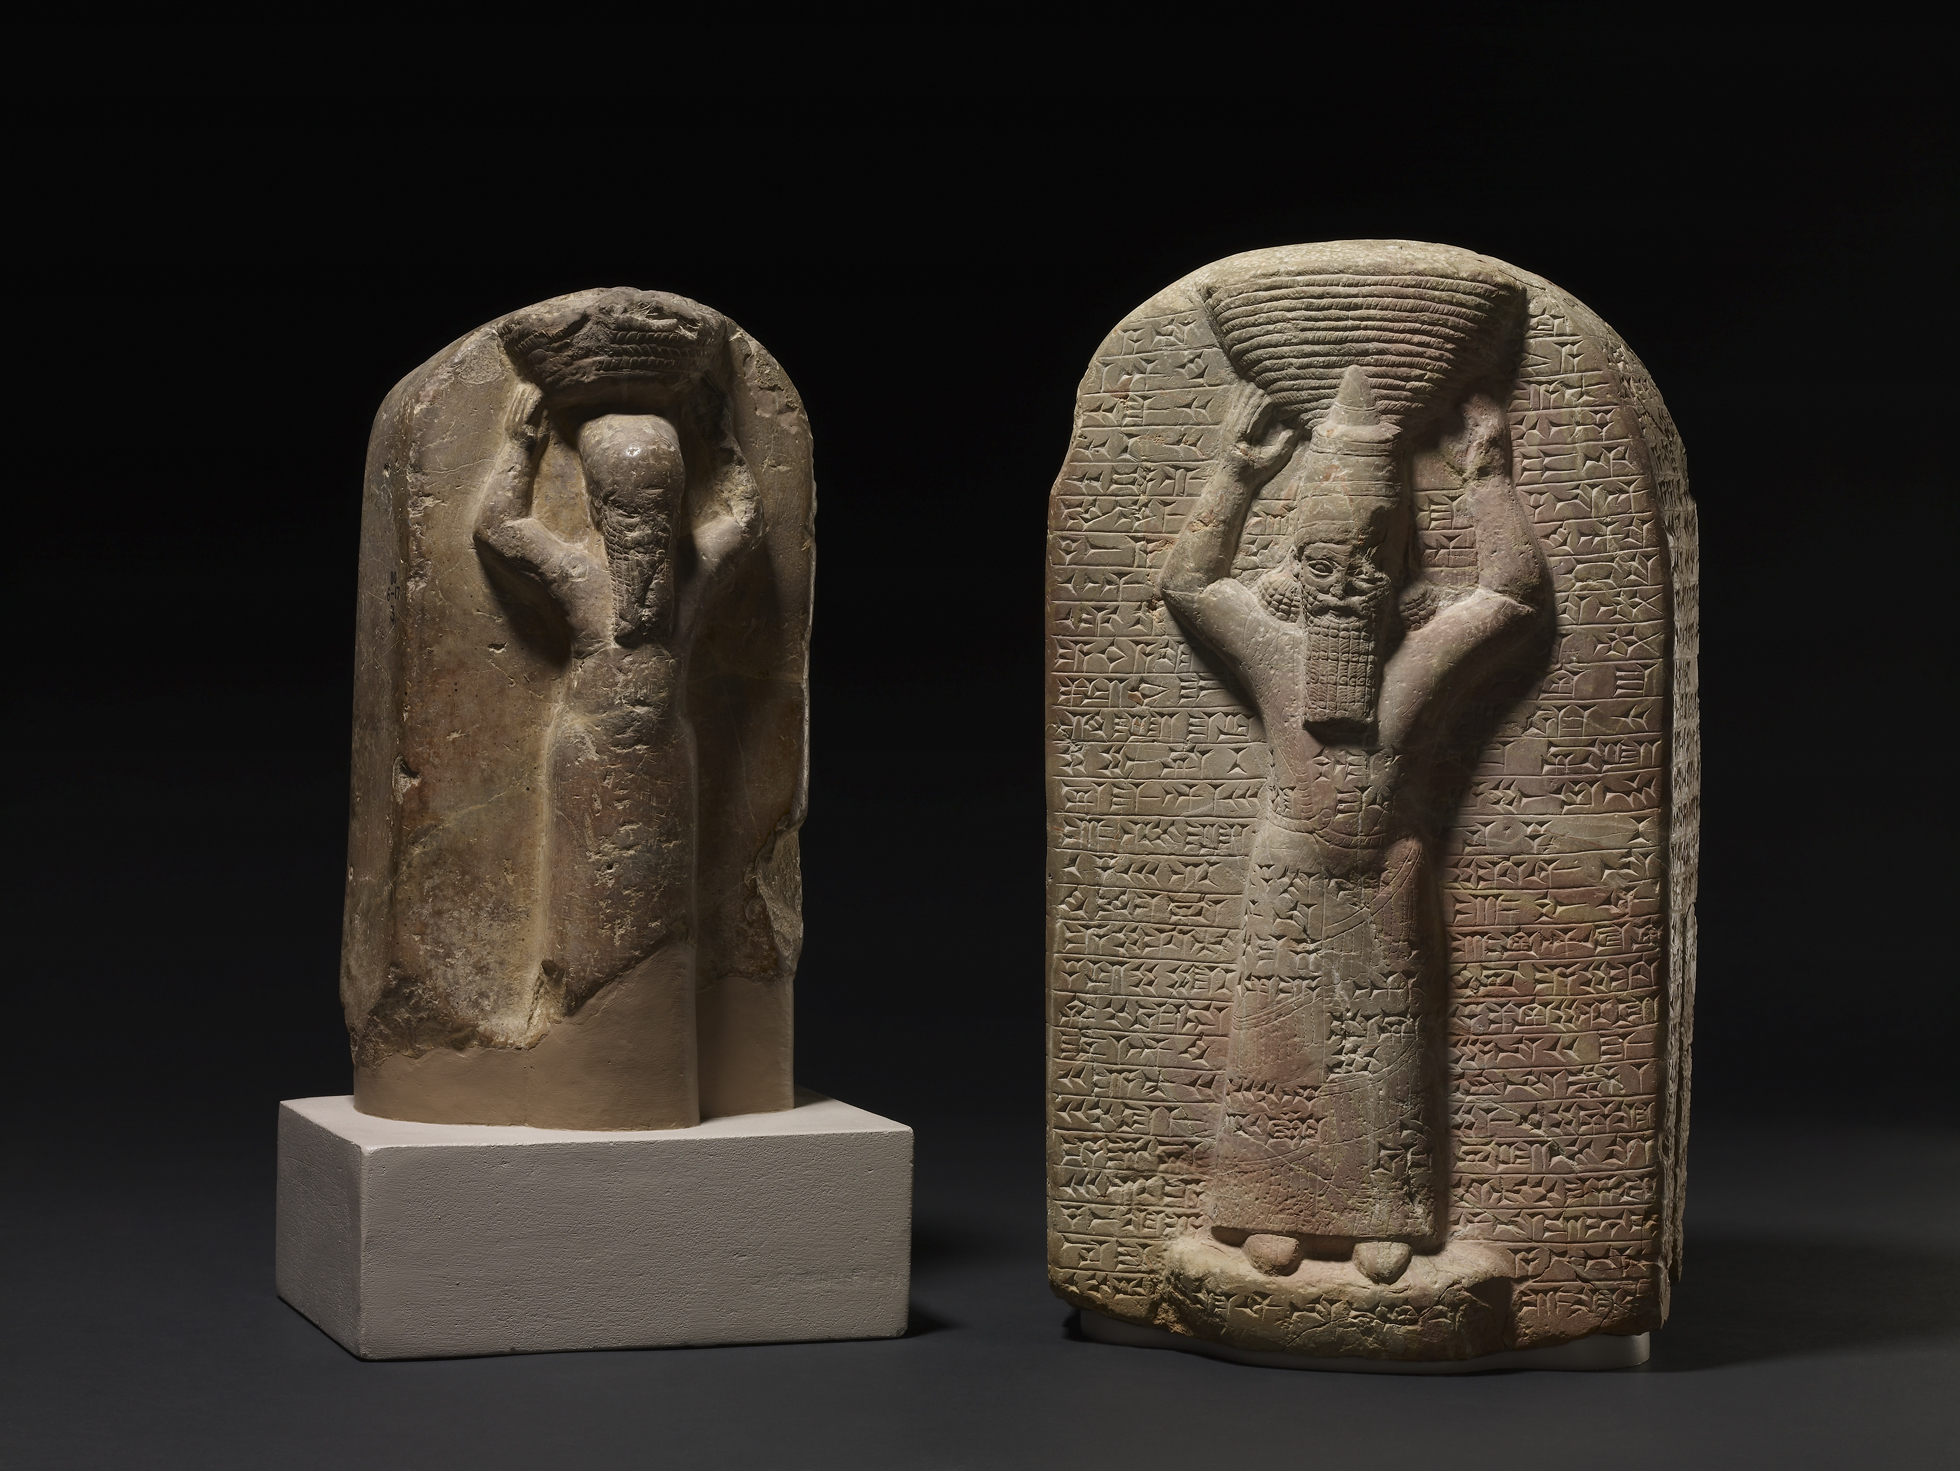 Shamash-shumu-ukin and Ashurbanipal Stone stele depicting Ashurbanipal (right), shown with a ritual basket on his head with cuneiform inscription, South Iraq, Marduk temple (Babylon), 668BC-665BC. His brother Shamash-shumu-ukin (left) carved with cuneiform inscription, South Iraq, Temple of Nabu (Borsippa), 668BC- 655BC © The Trustees of the British Museum